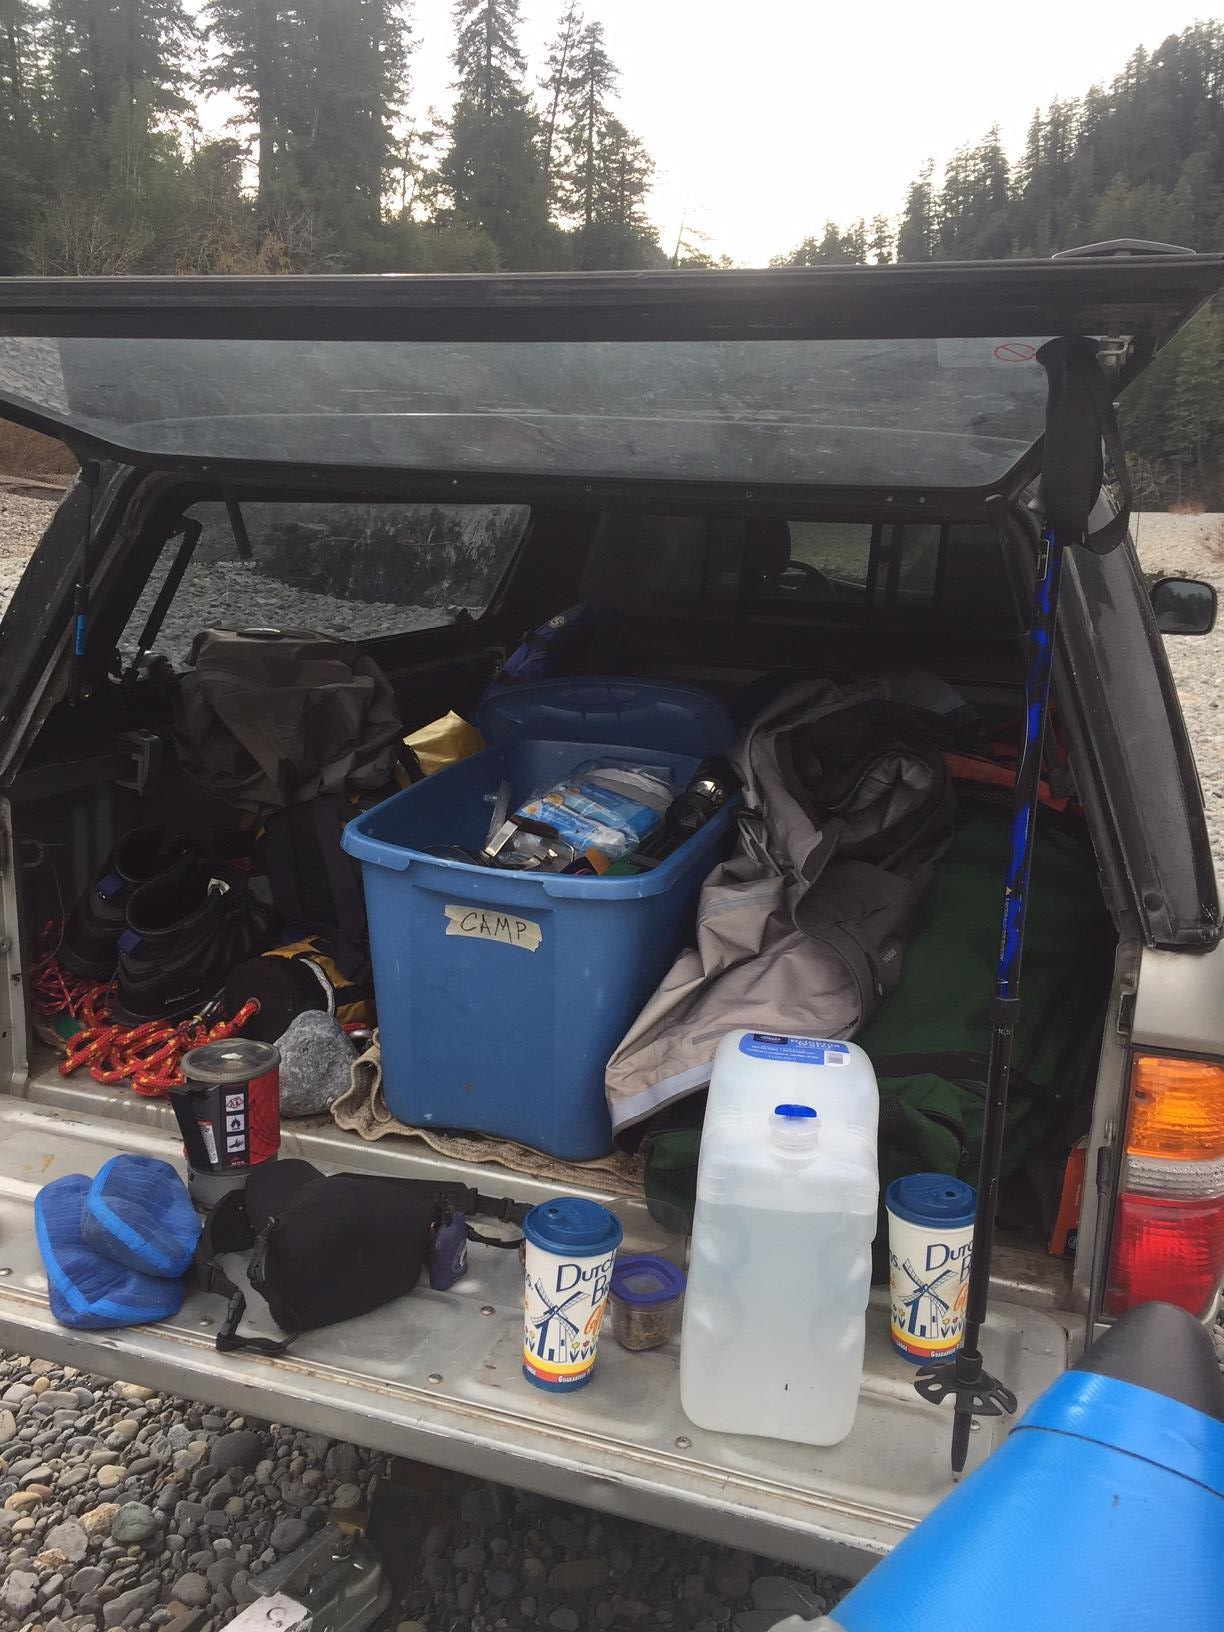 The back of the truck after a fishing trip. Photography by Max Salzburg of Sonja K Photography.